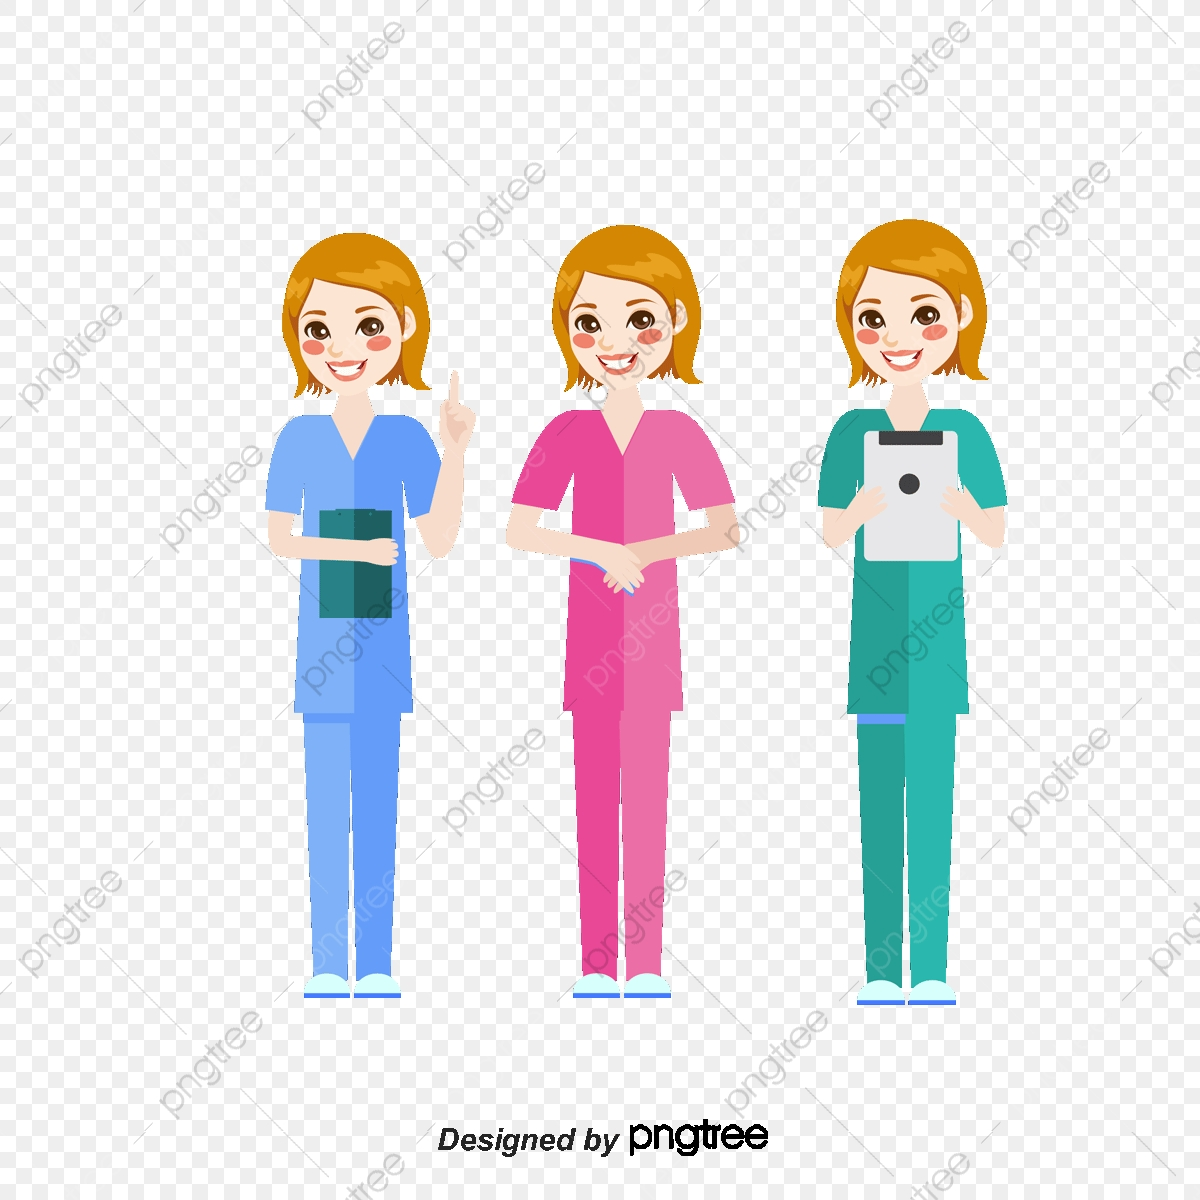 Nurse Sister Medical Staff Cartoon Hand Painted Medical Treatment Png Transparent Clipart Image And Psd File For Free Download